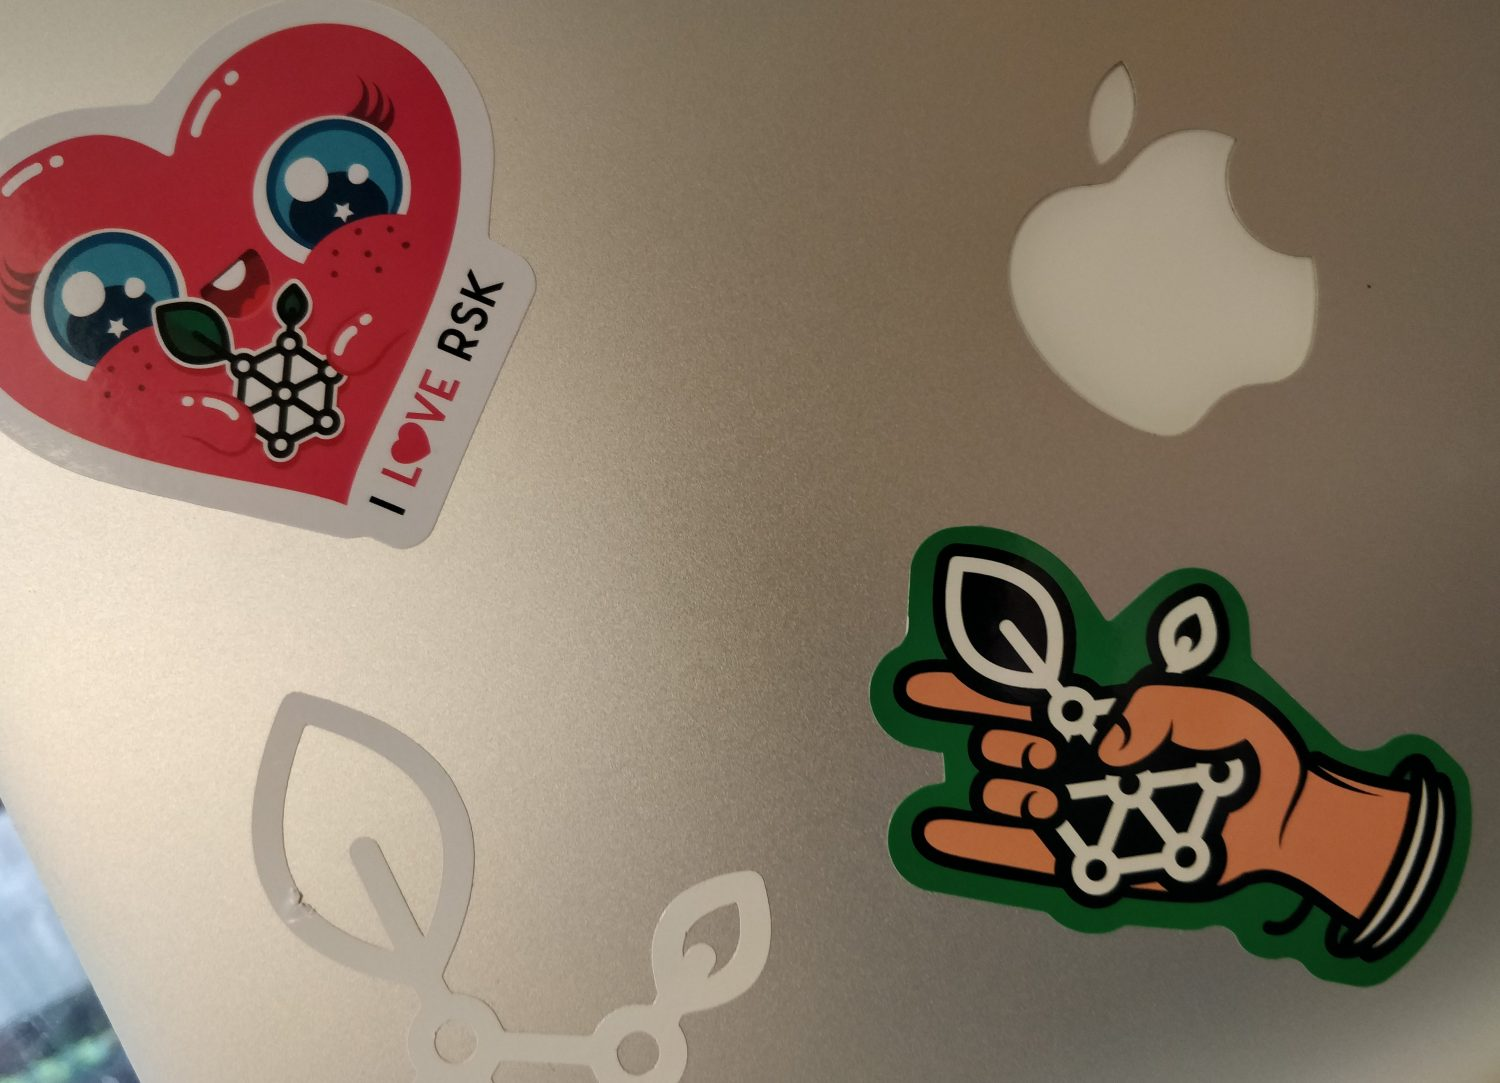 RSK, stickers